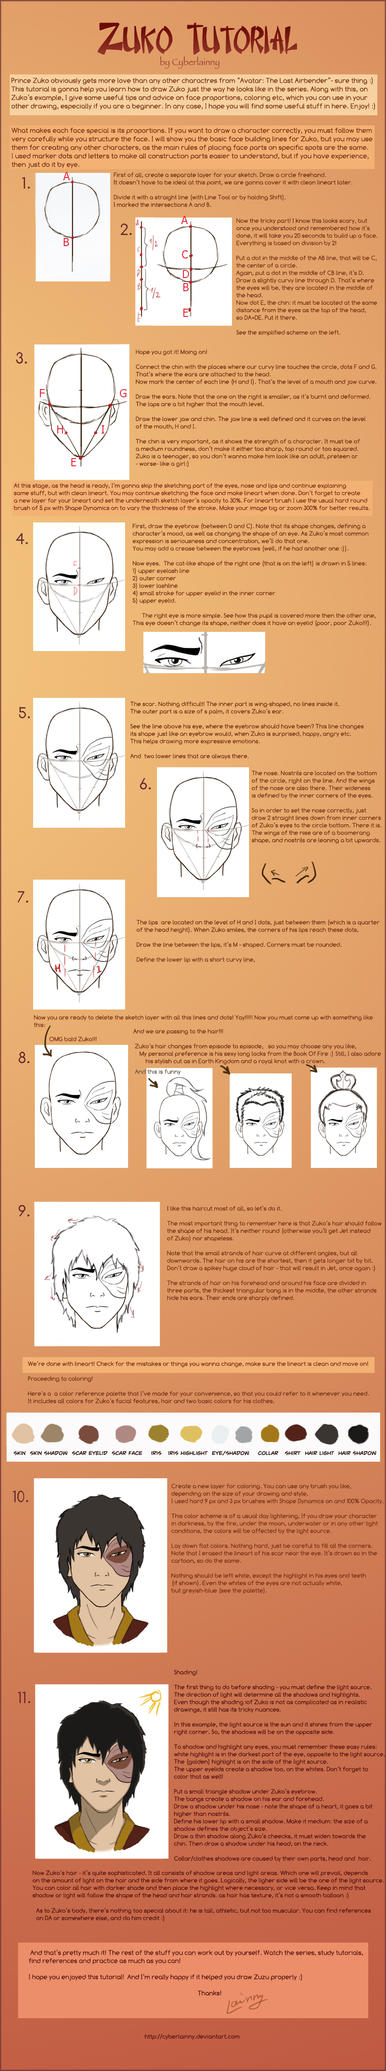 How To Draw Zuko-Tutorial by Lulu-Lomaki